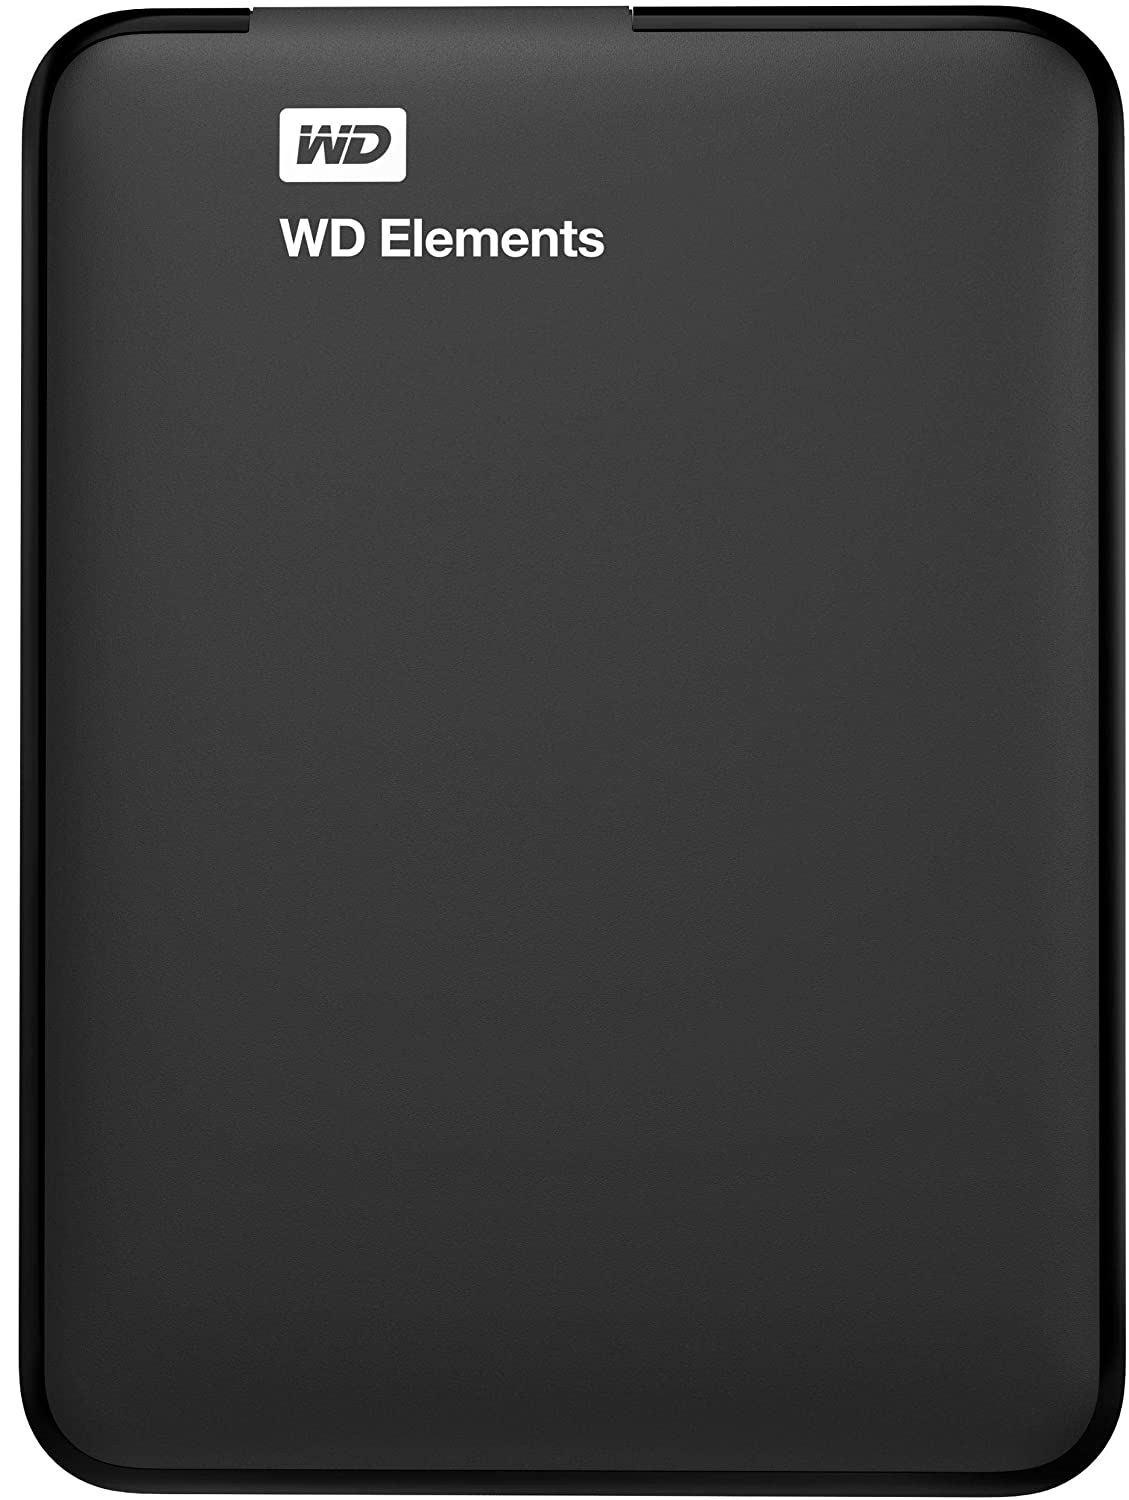 WD Elements 1.5 TB Portable External Hard Drive (Black)